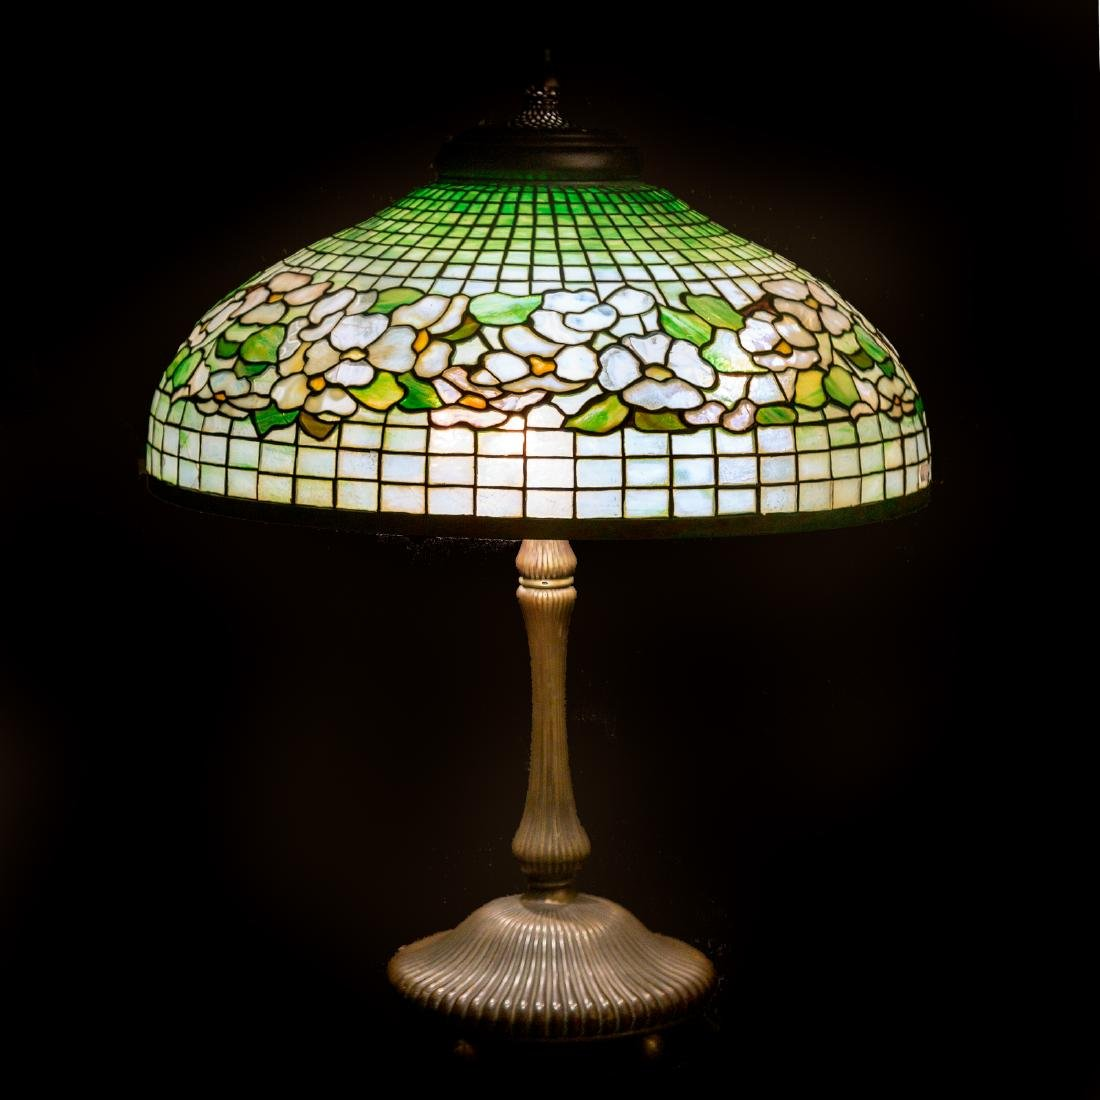 Tiffany leaded glass and bronze table lamp - 10